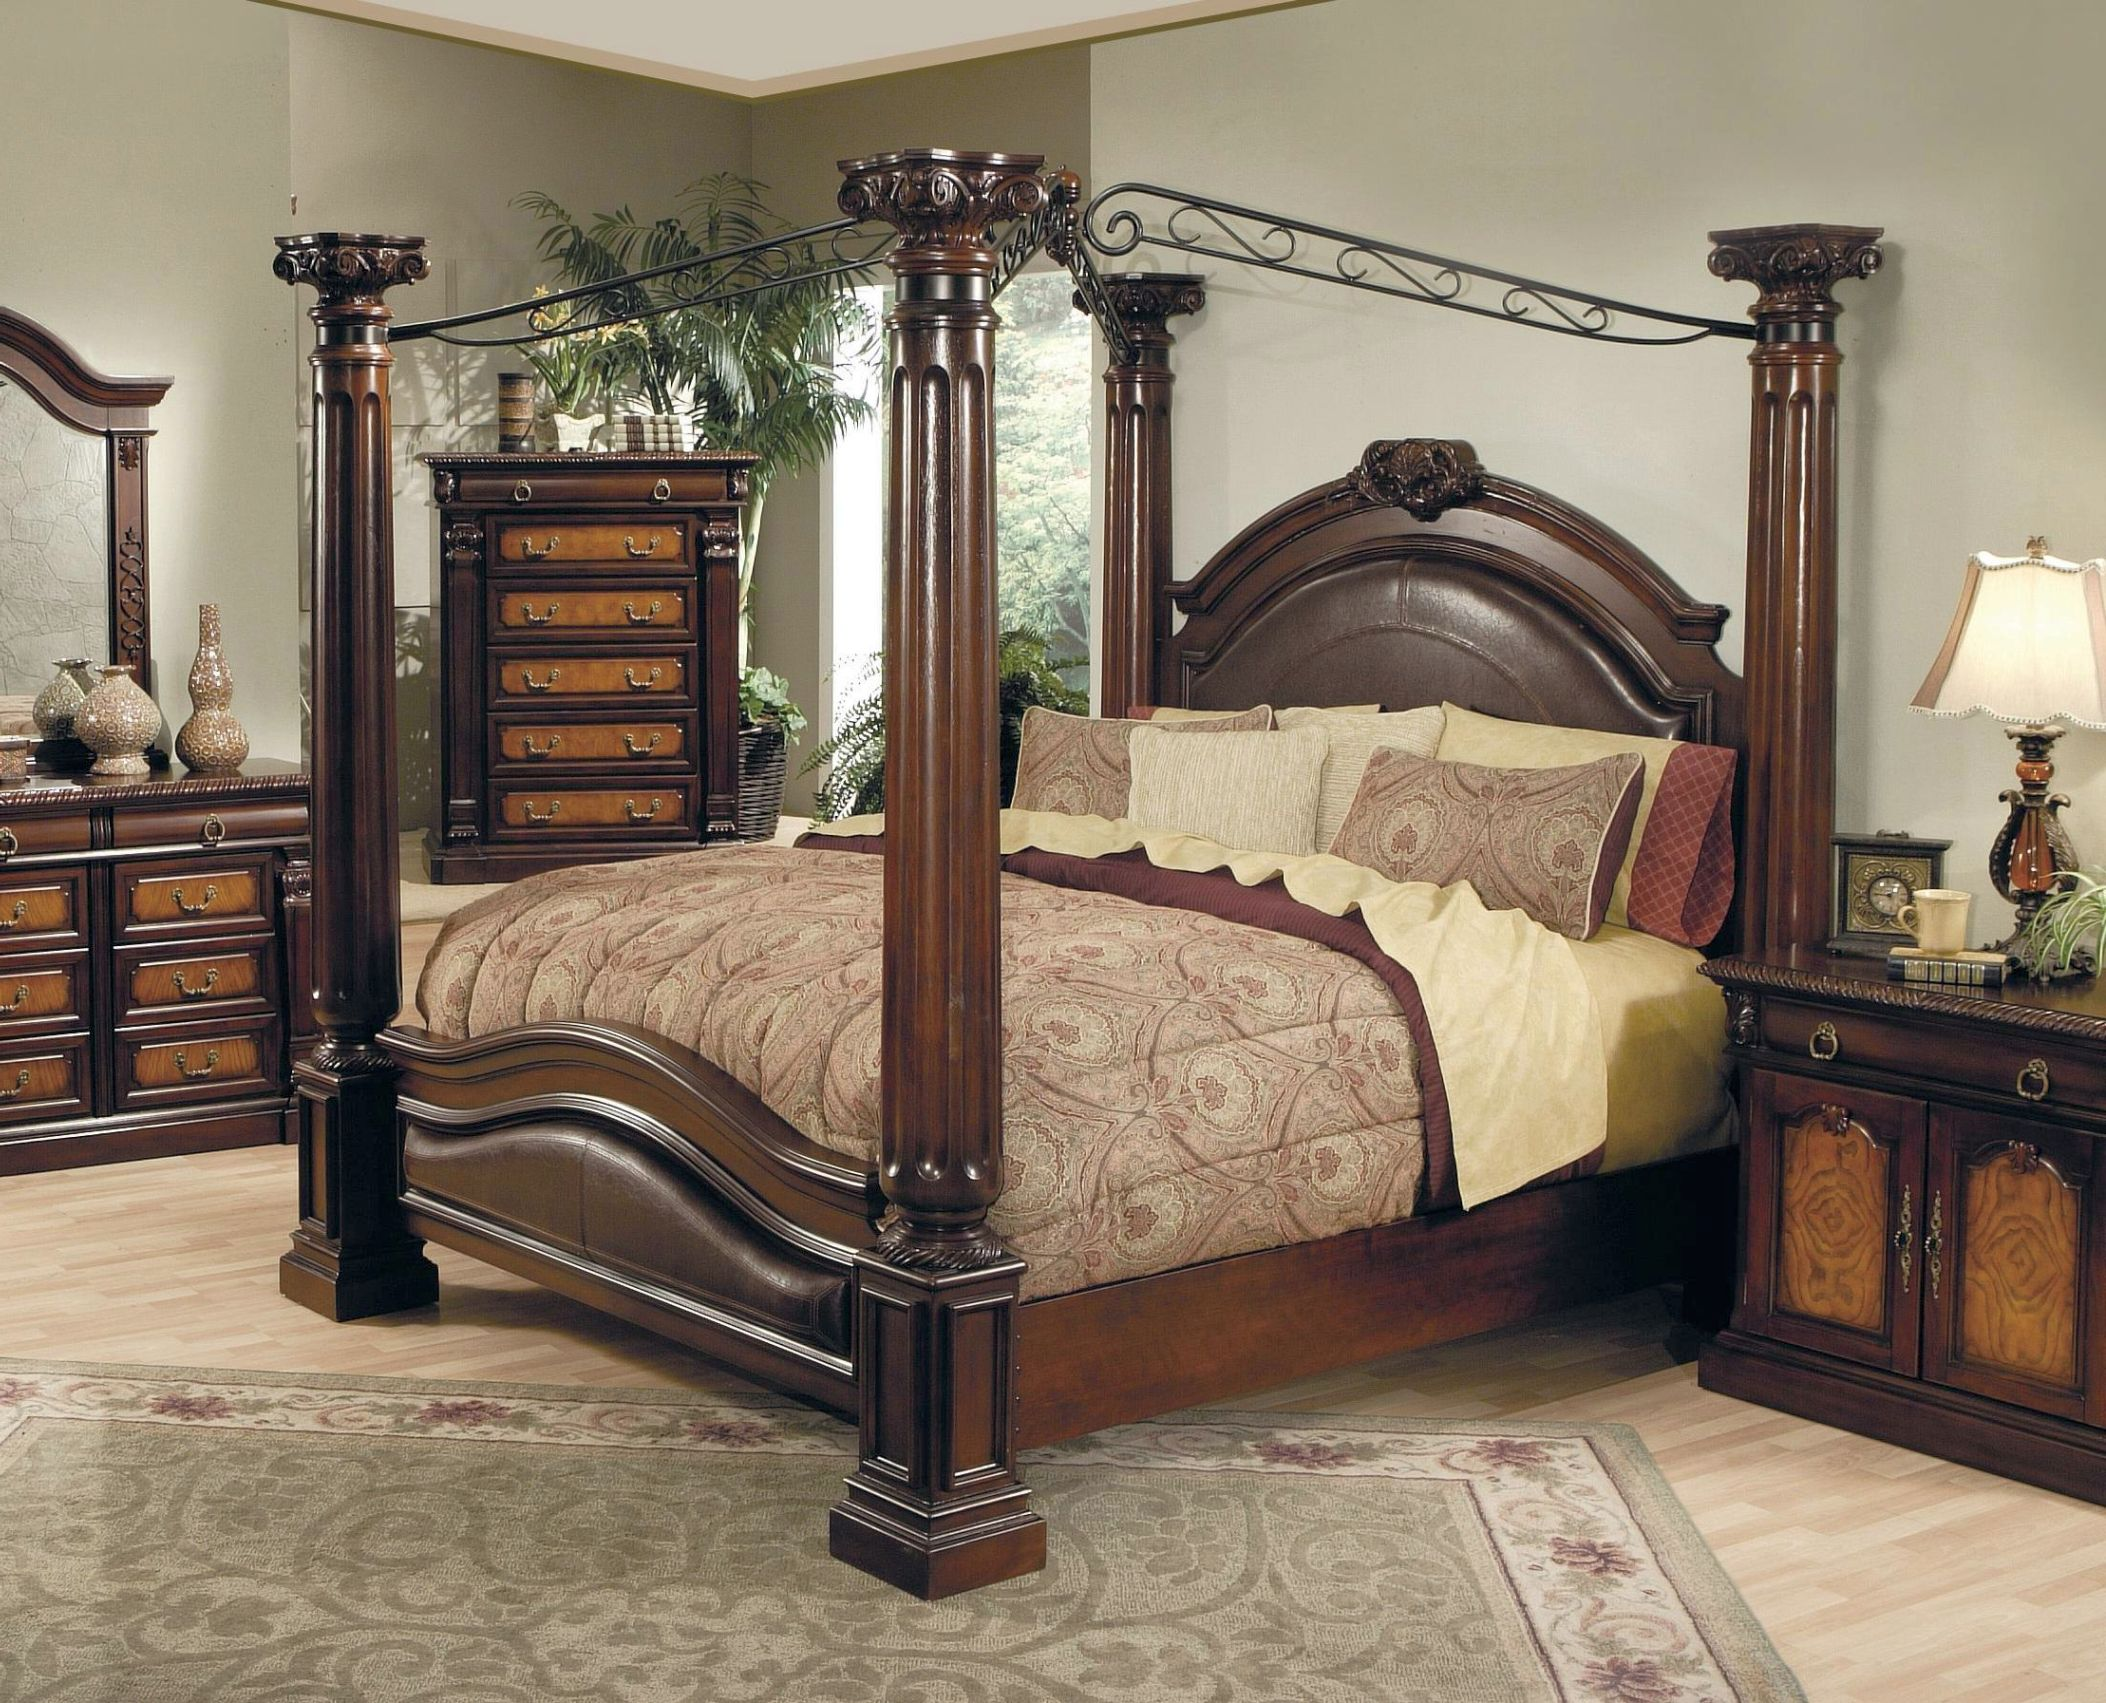 Exotic Canopy Beds Interior Design Home Decor Furniture Furnishings Bedroom